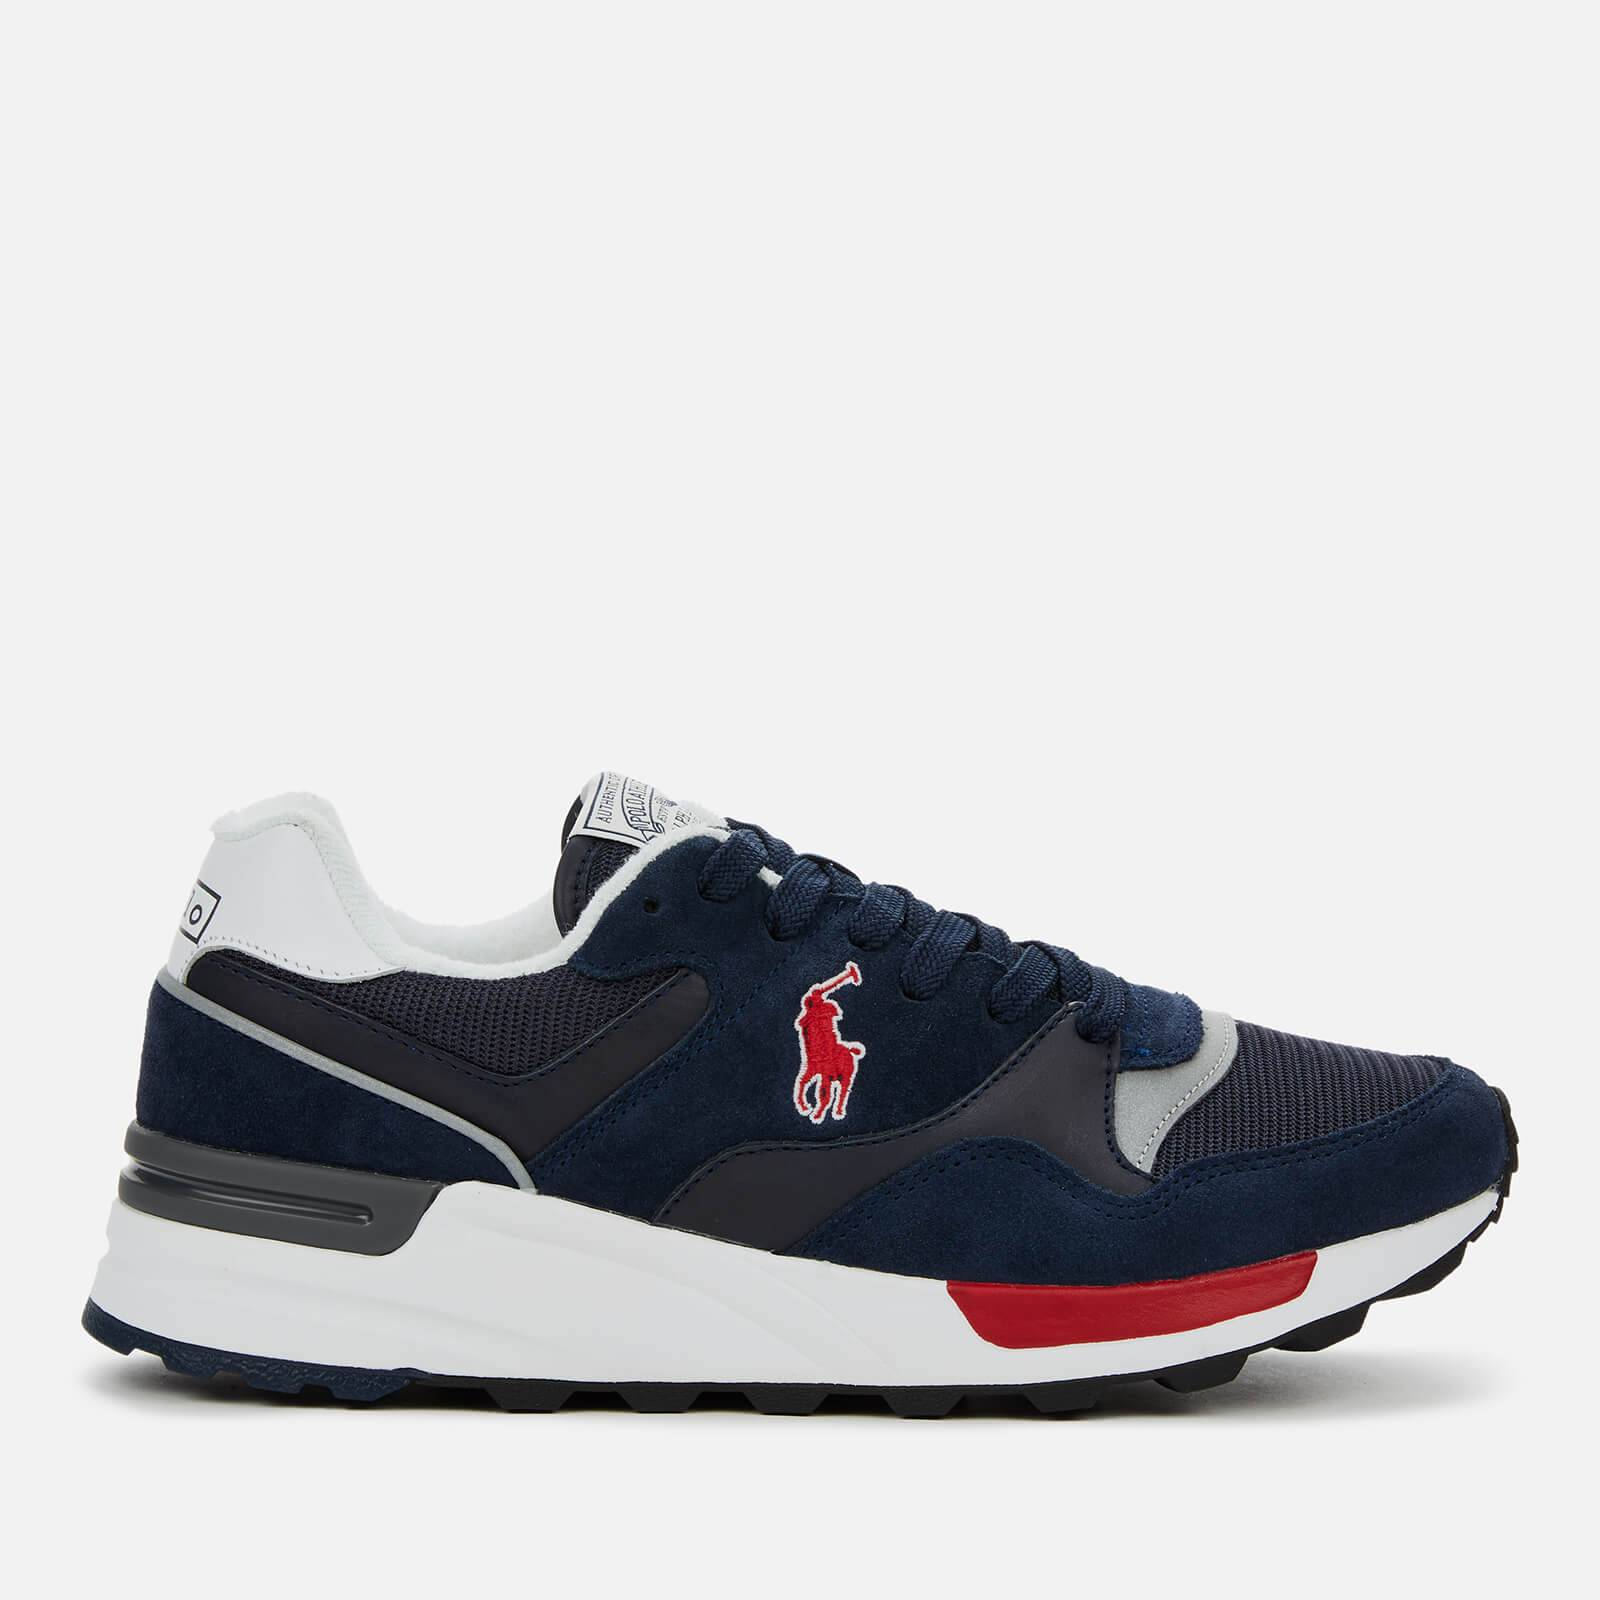 Ralph Lauren Polo Ralph Lauren Men's Trackstar Pony Suede/Mesh Running Style Trainers - Newport Navy - UK 9